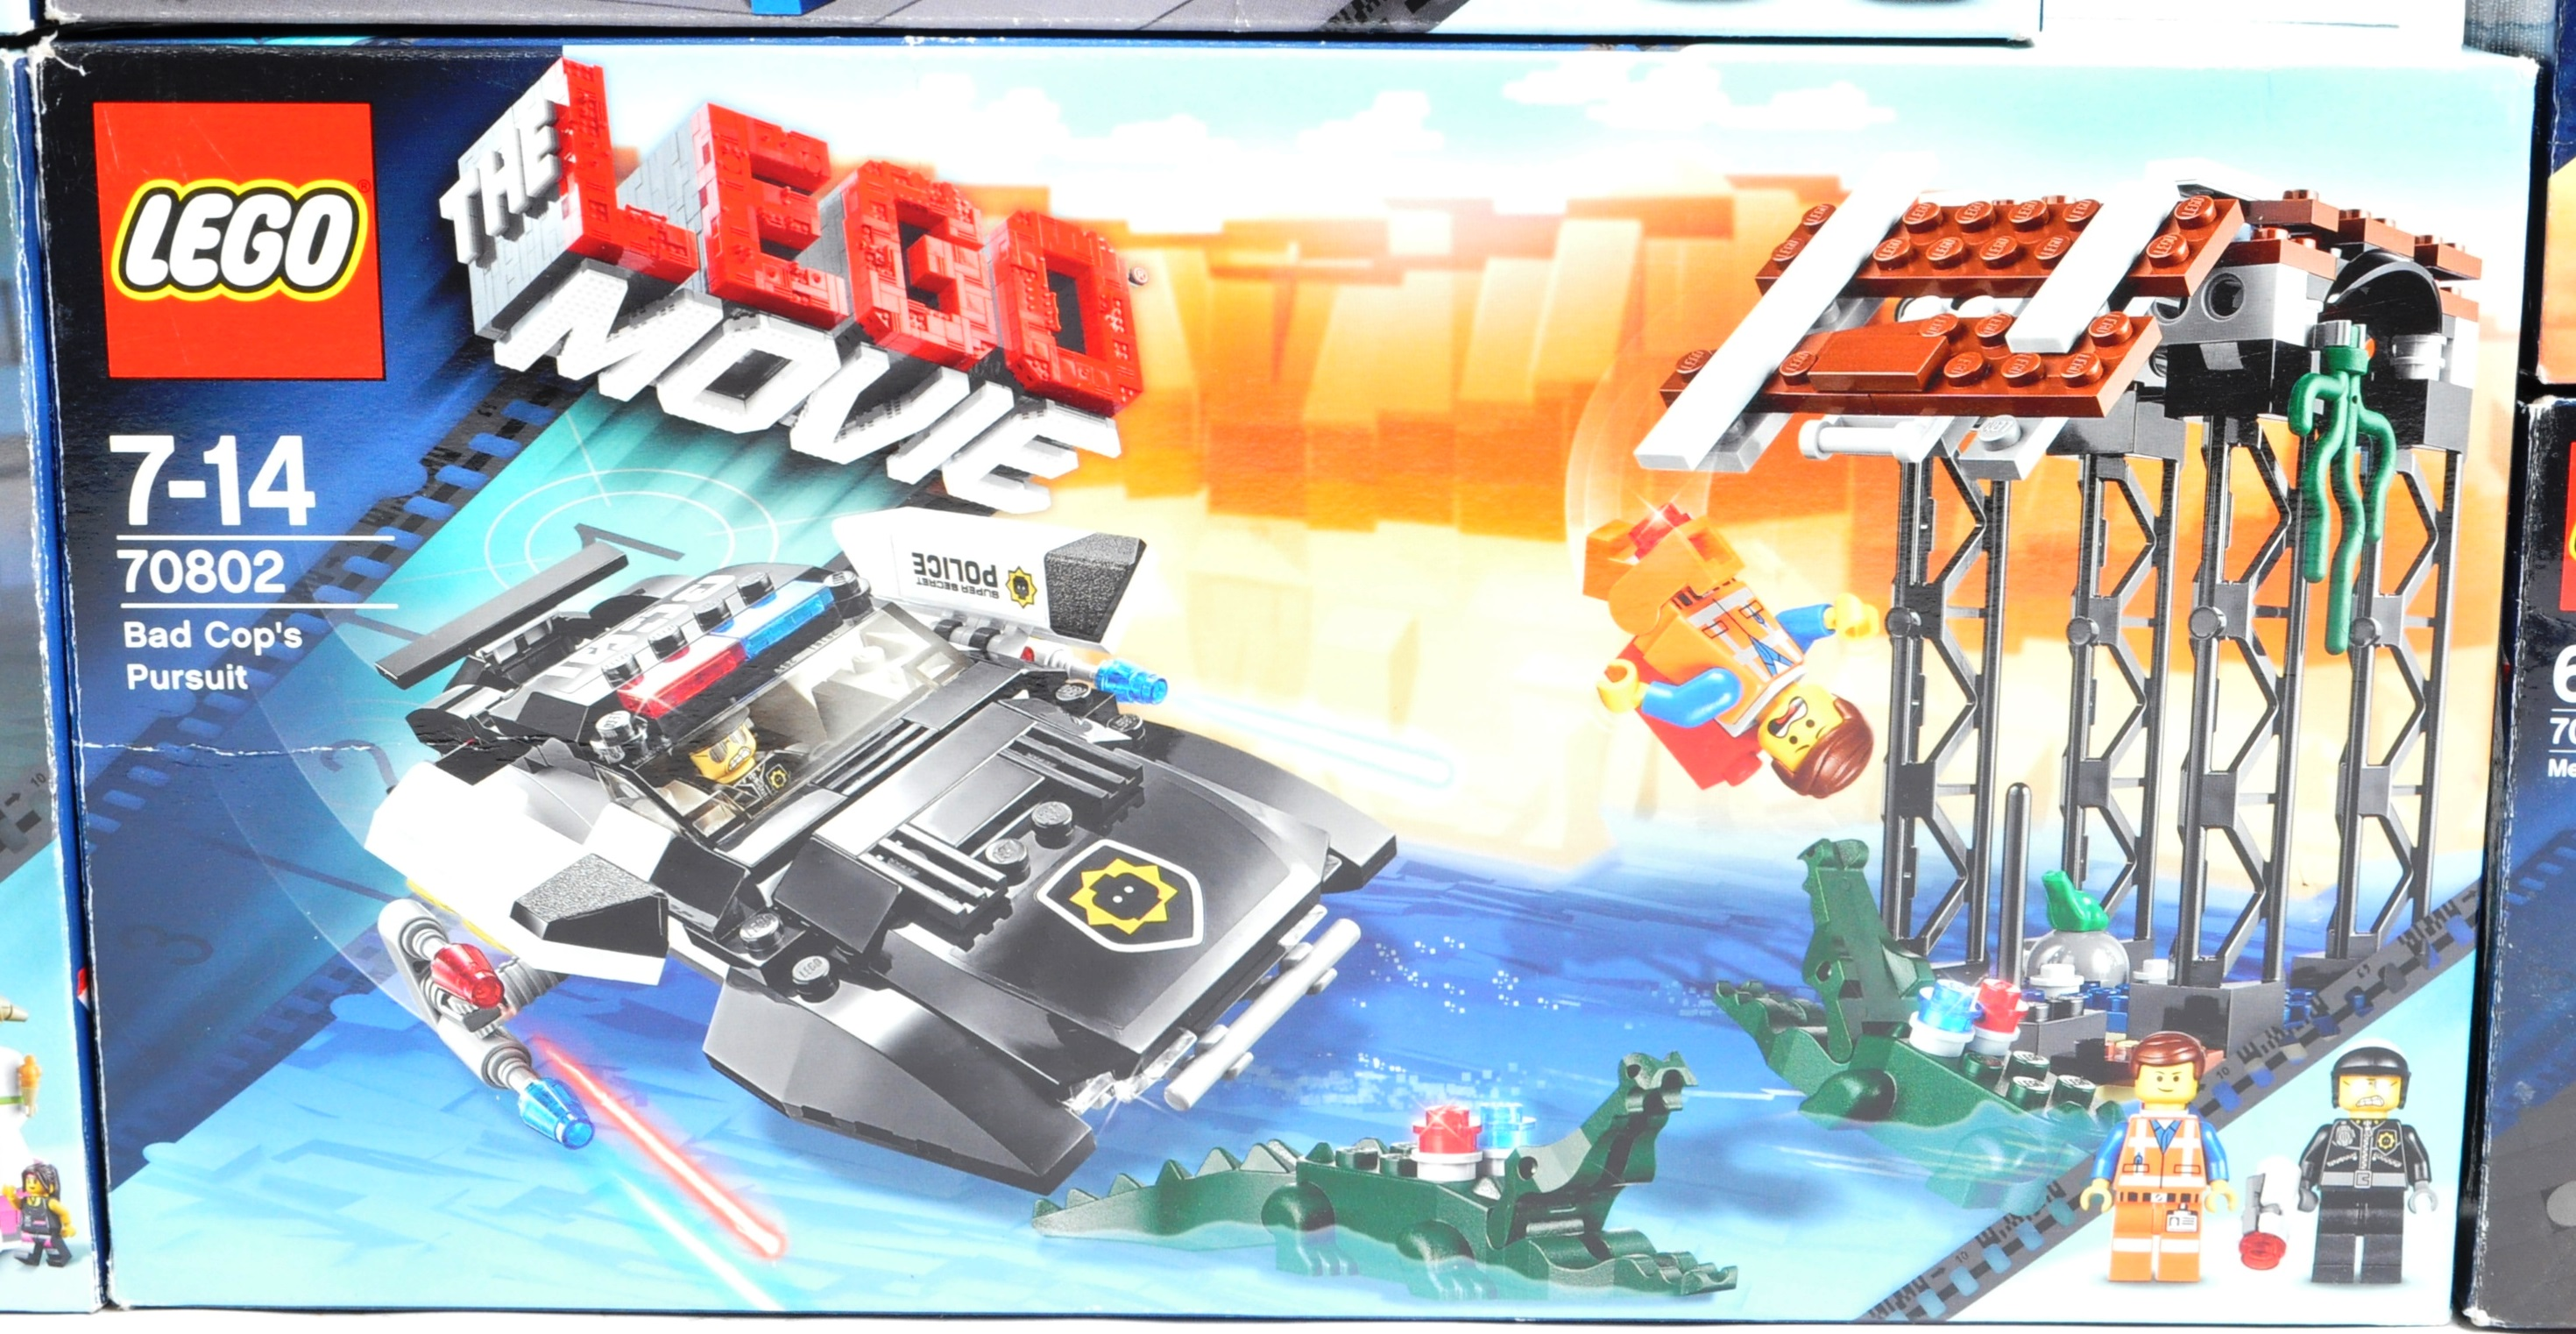 LEGO SETS - THE LEGO MOVIE - COLLECTION OF X7 LEGO MOVIE SETS - Image 6 of 17